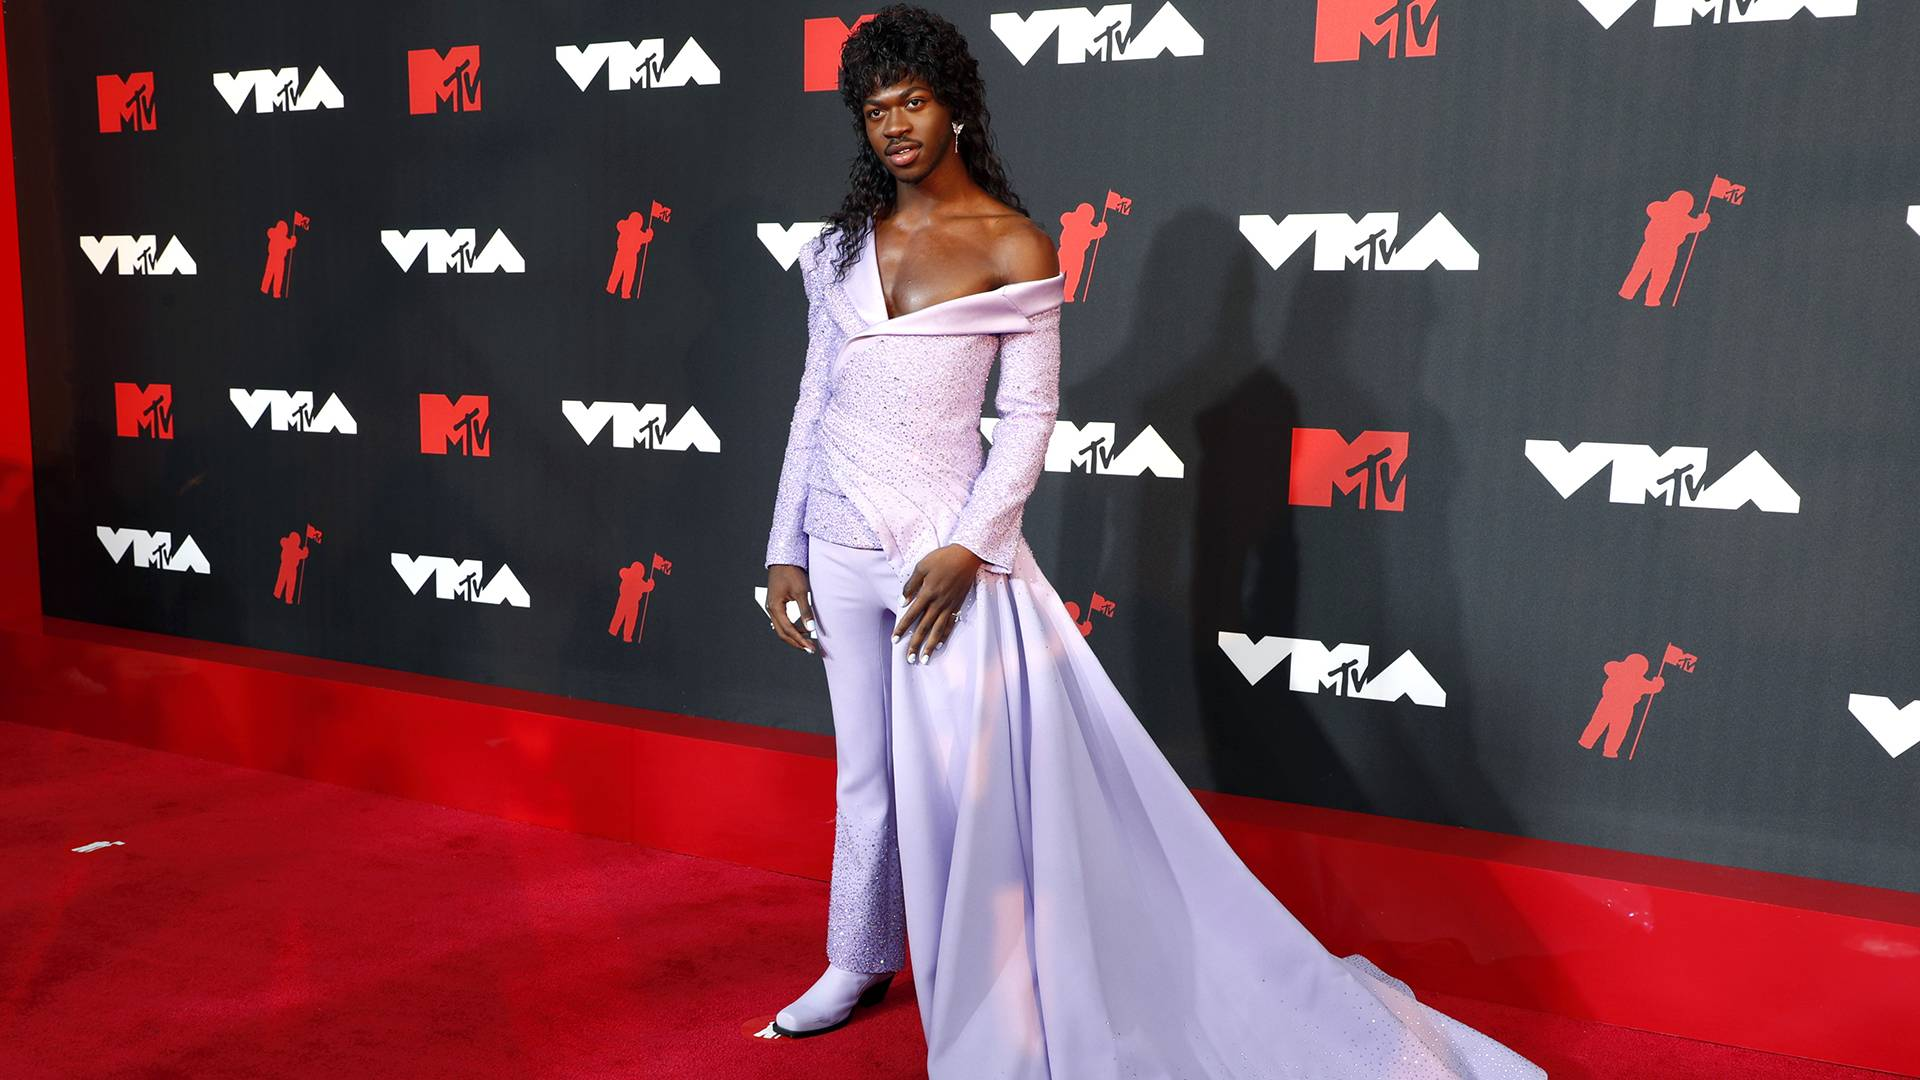 MTV Video Music Awards 2021 | The Best of the VMAs 2021 Red Carpet | Lil Nas X | 1920x1080